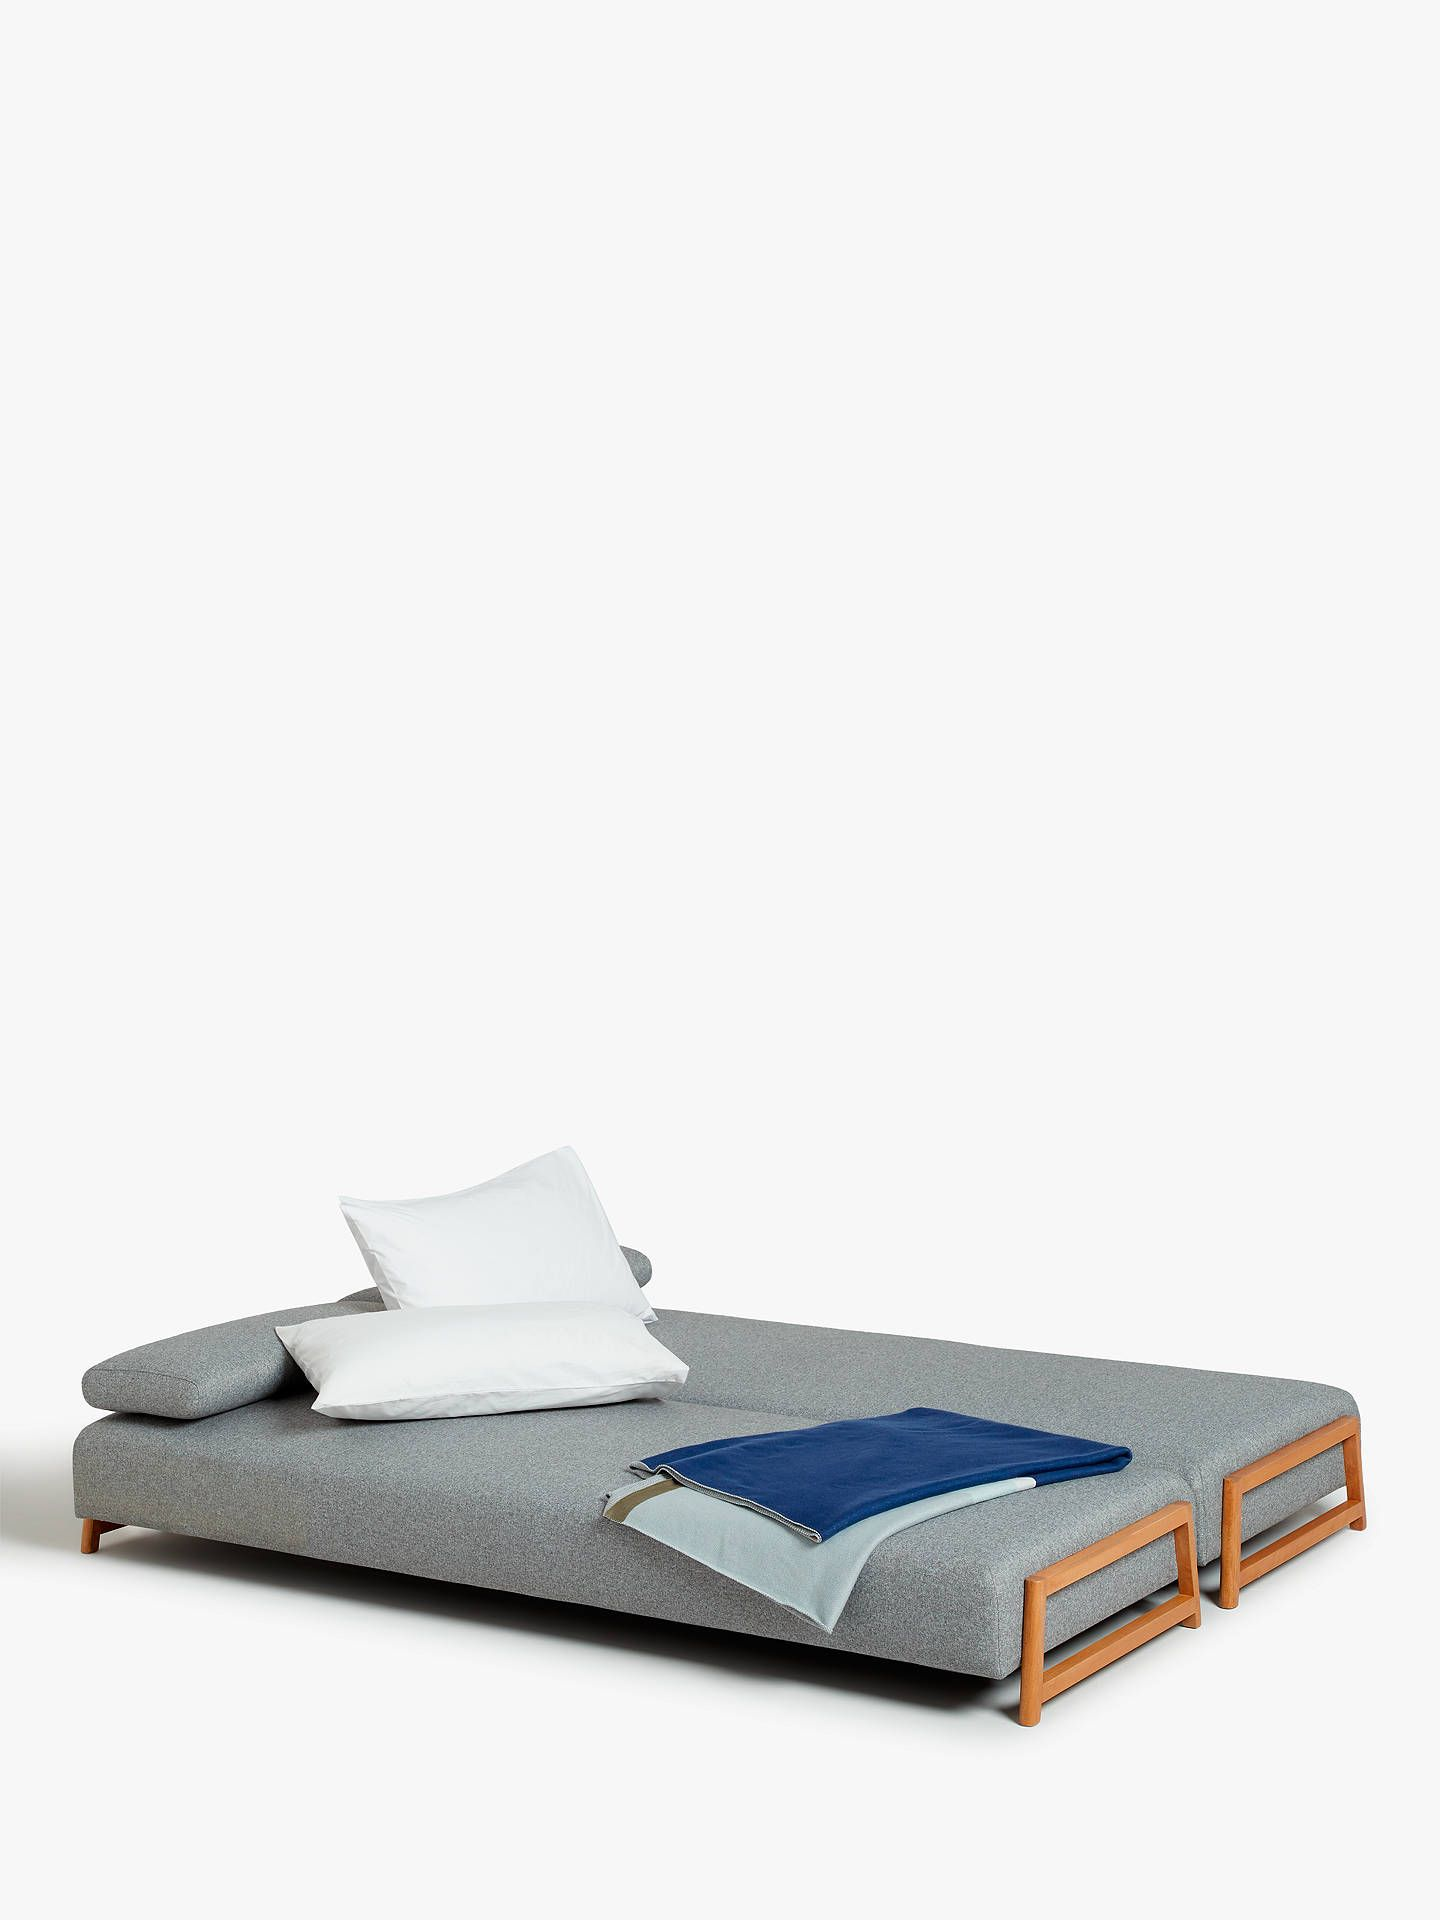 John Lewis & Partners Duplet Daybed (With images) Daybed